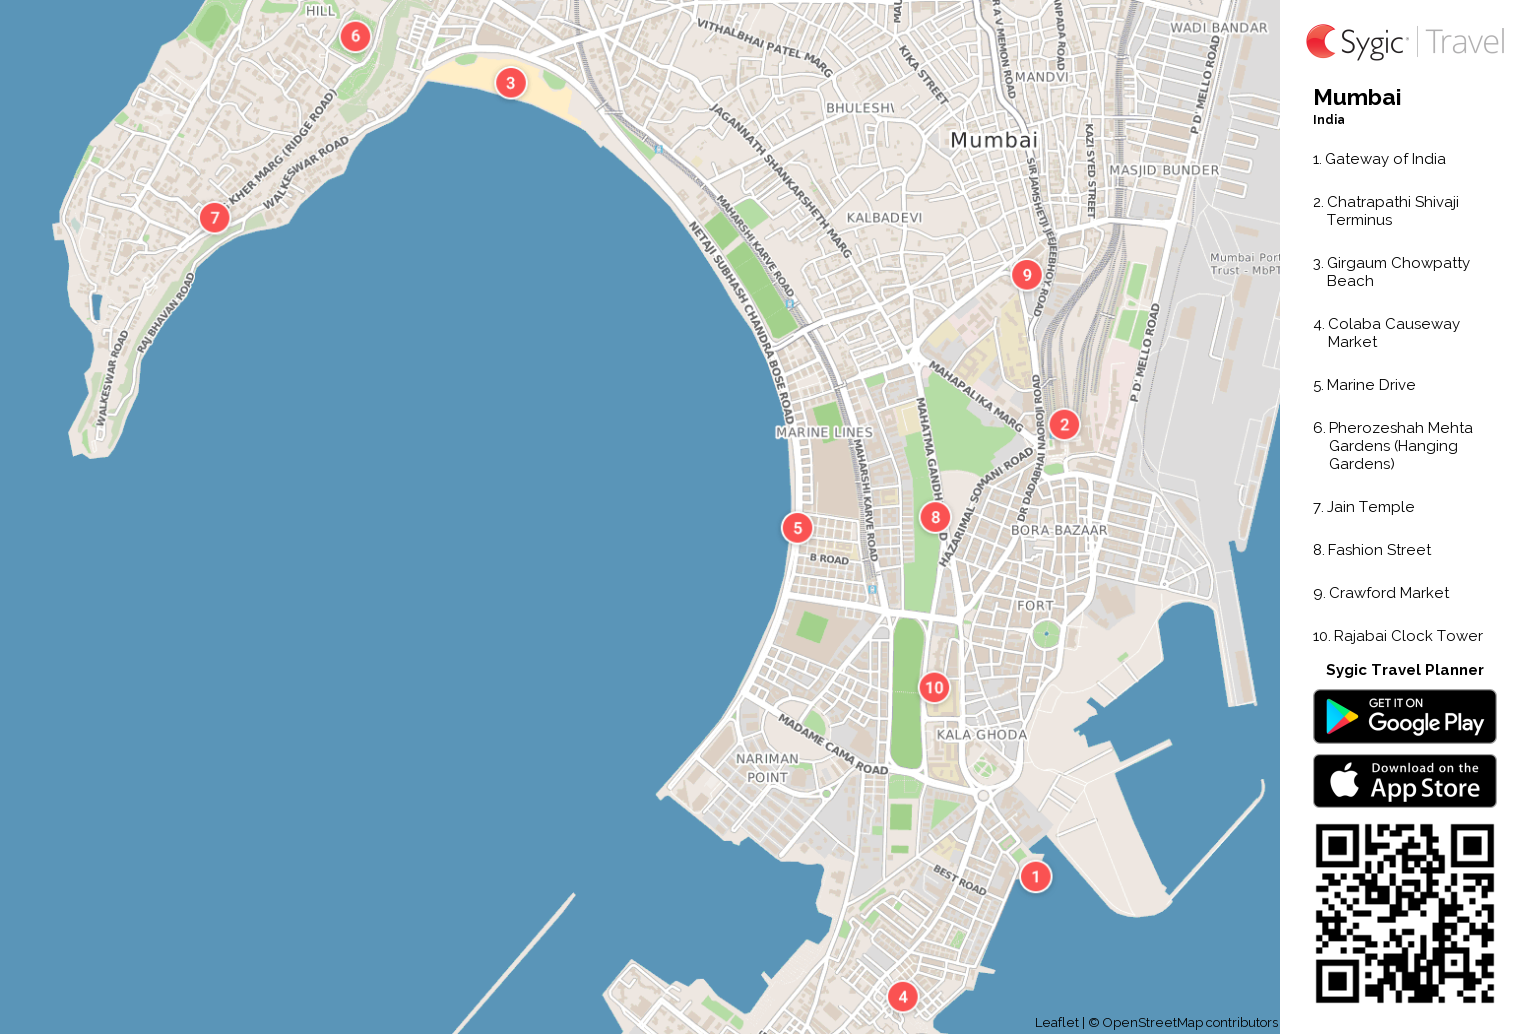 Mumbai Tourist Map Mumbai Printable Tourist Map | Sygic Travel